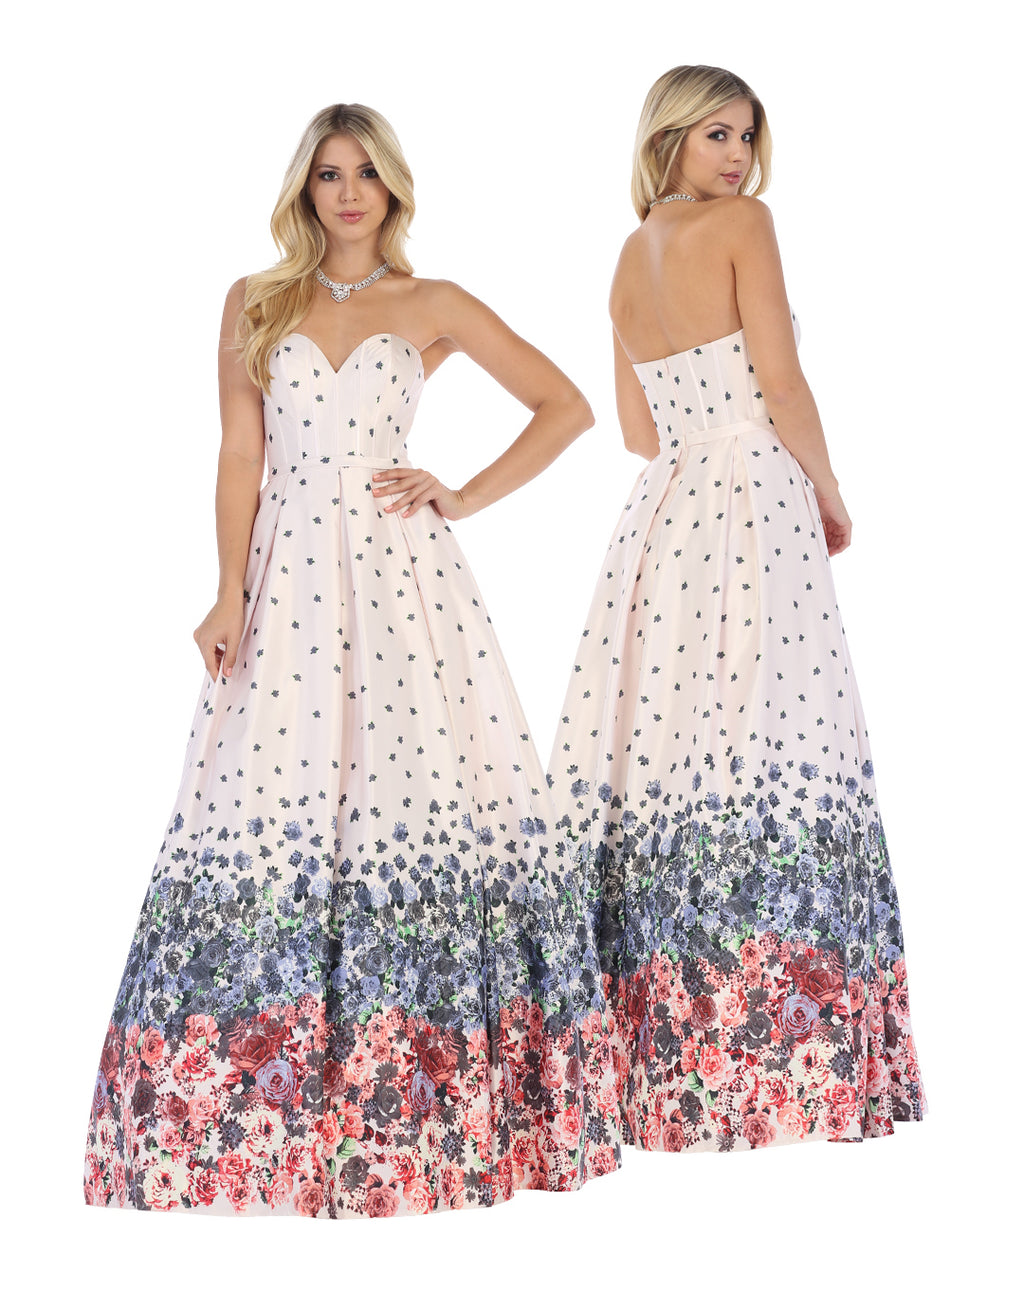 Classic Off Shoulder Gown With Ombre Floral Design | Norma Reed